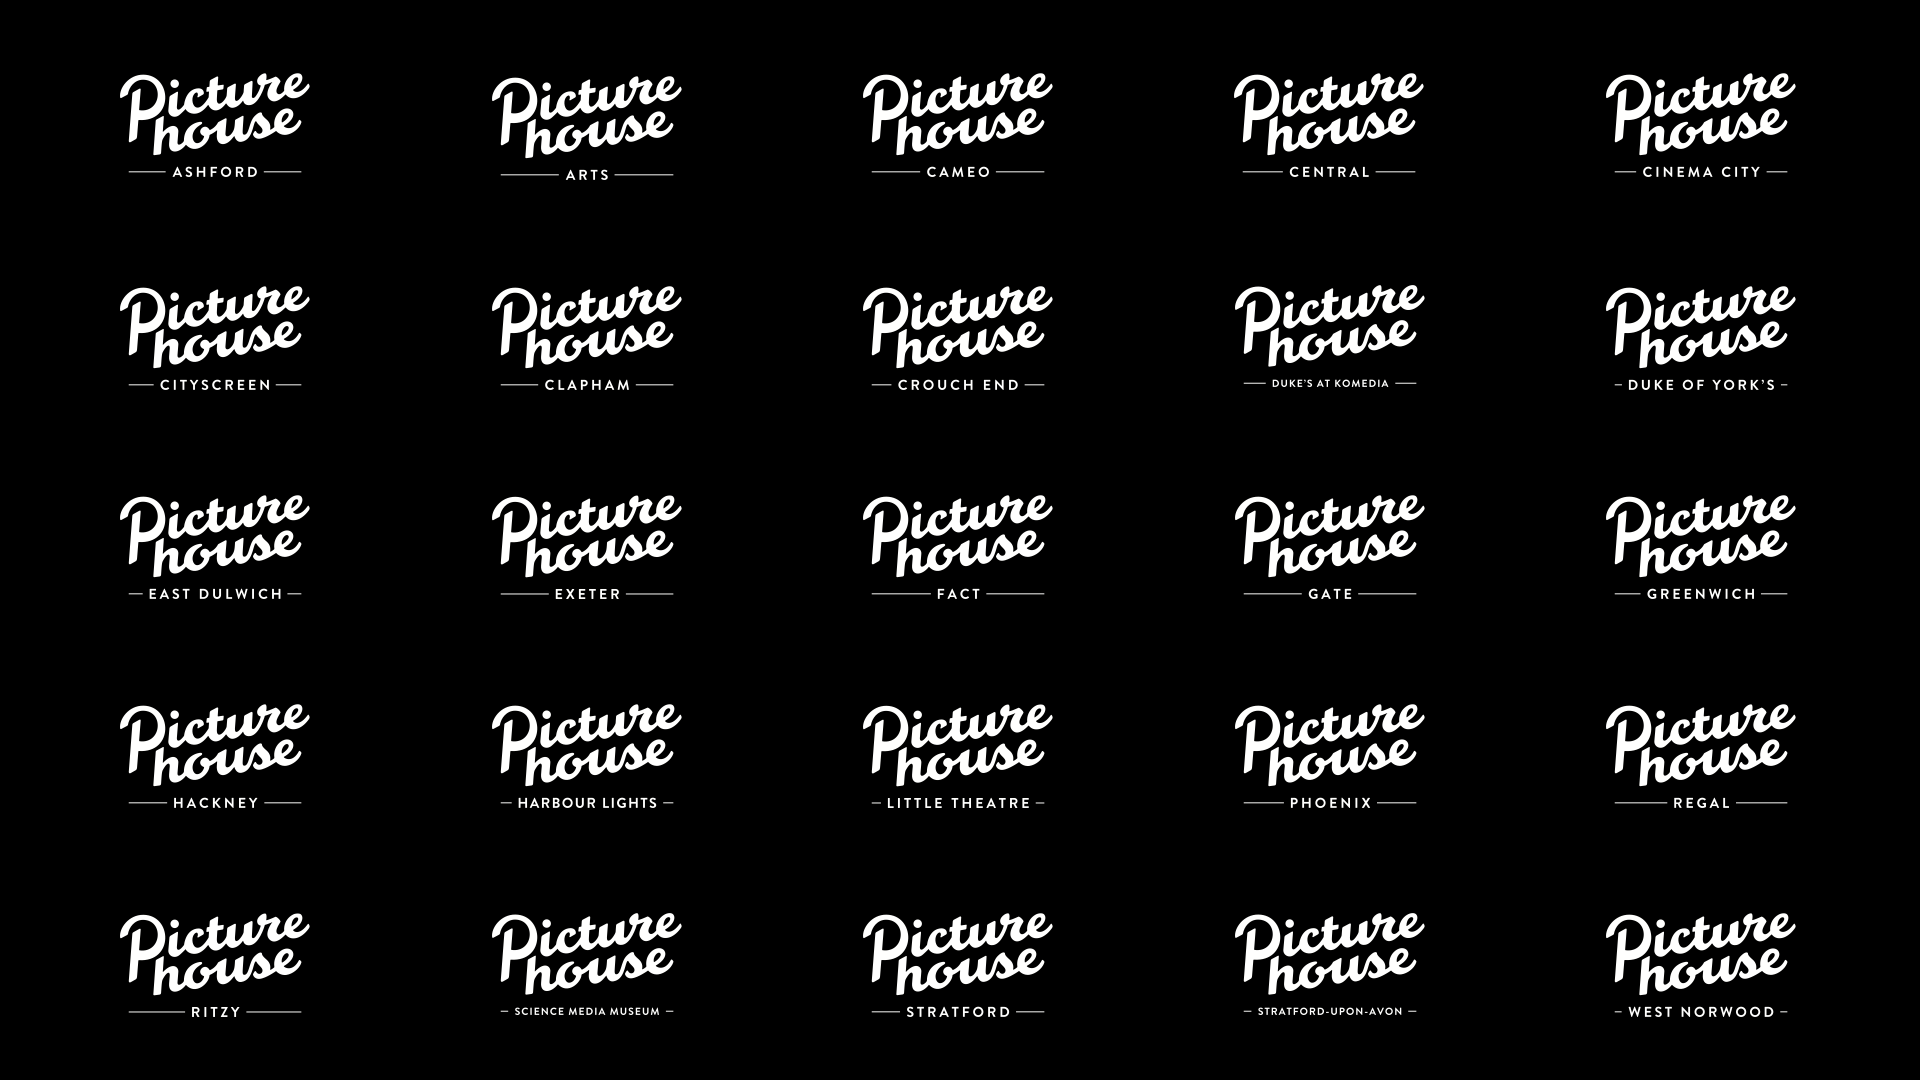 The family of Picturehouse Cinemas, each with a consistent branded logo